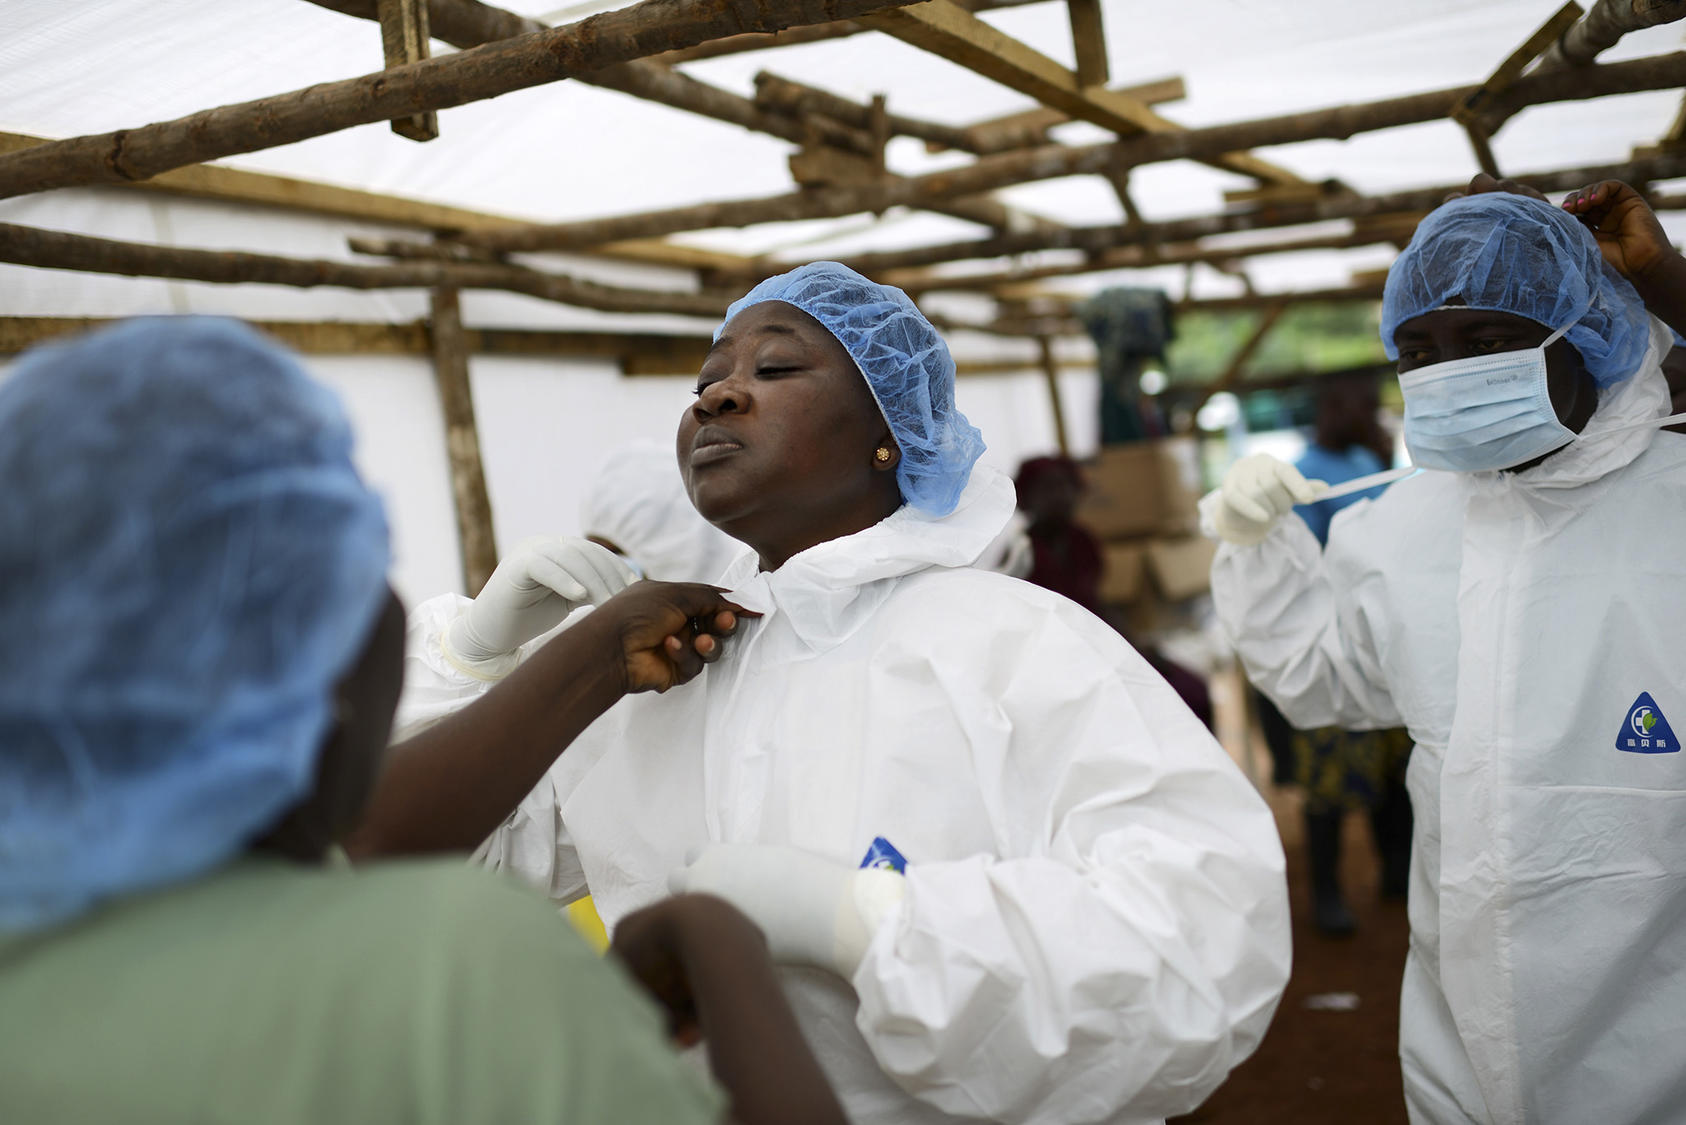 Josephine Finda Sellu, deputy nurse matron at a government hospital, before going into the isolation area for Ebola patients, in Kenema, Sierra Leone, Aug. 20, 2014. (Samuel Aranda/The New York Times)